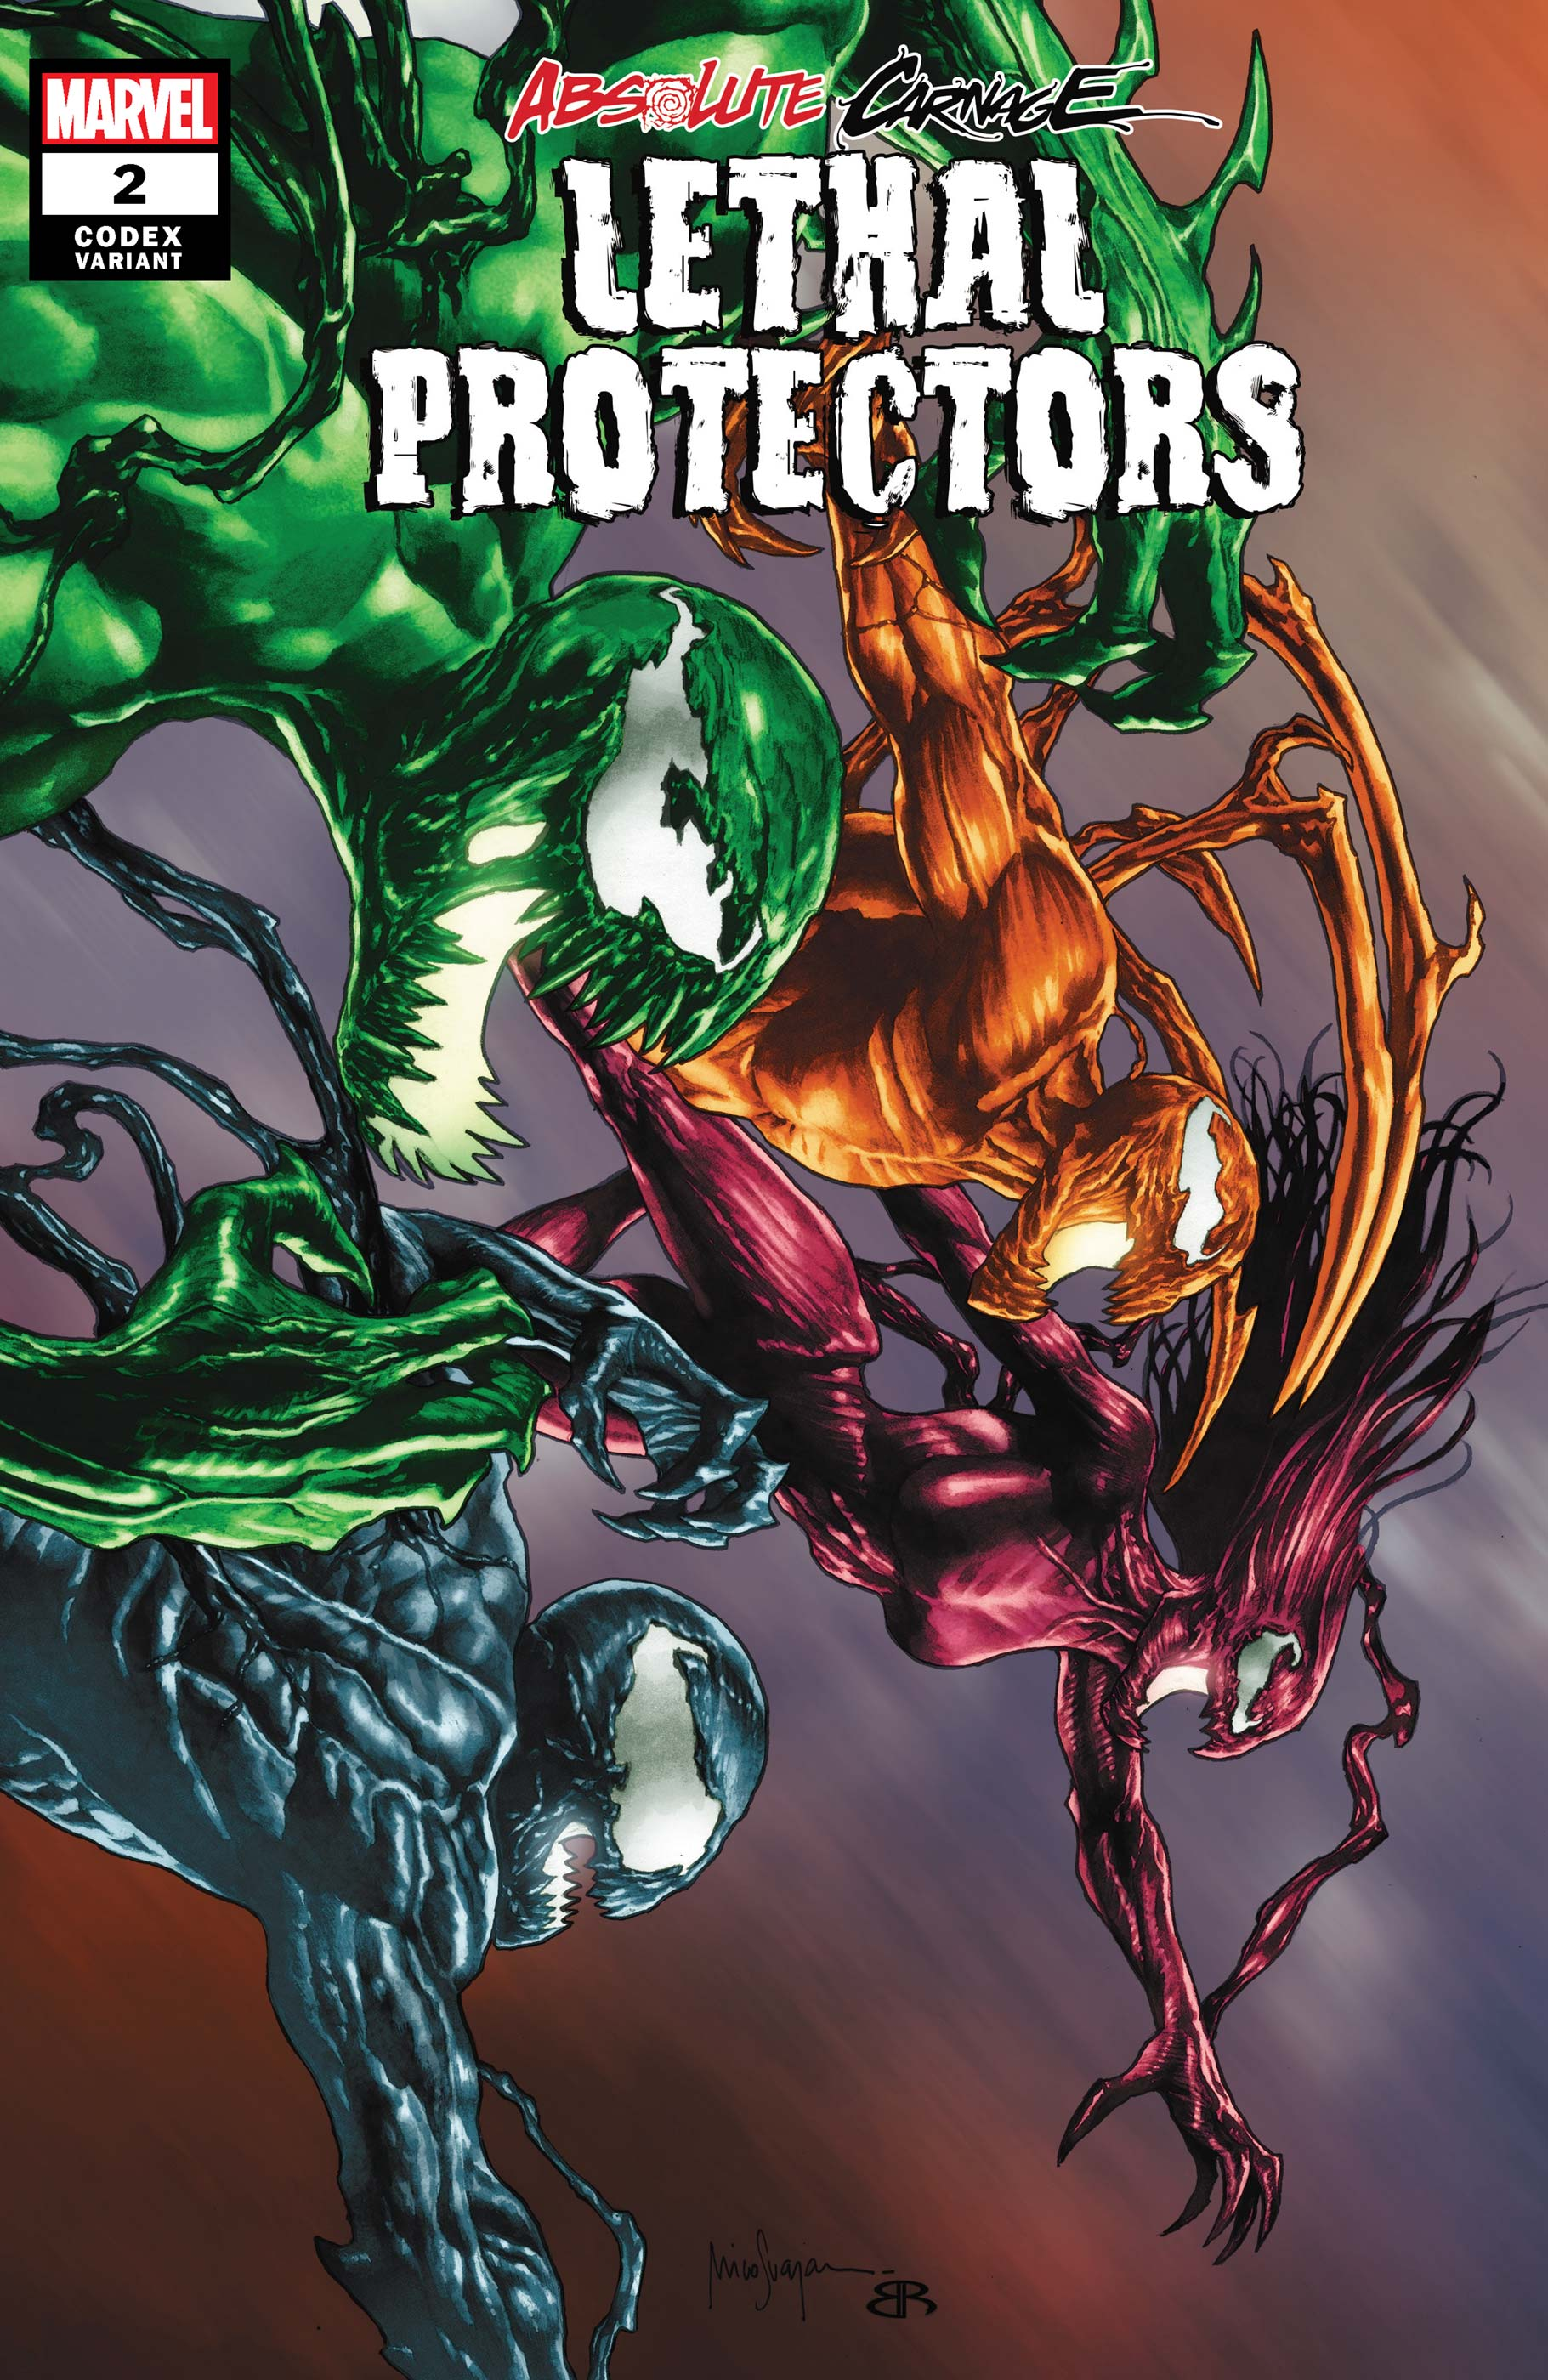 Absolute Carnage: Lethal Protectors (2019) #2 (Variant)